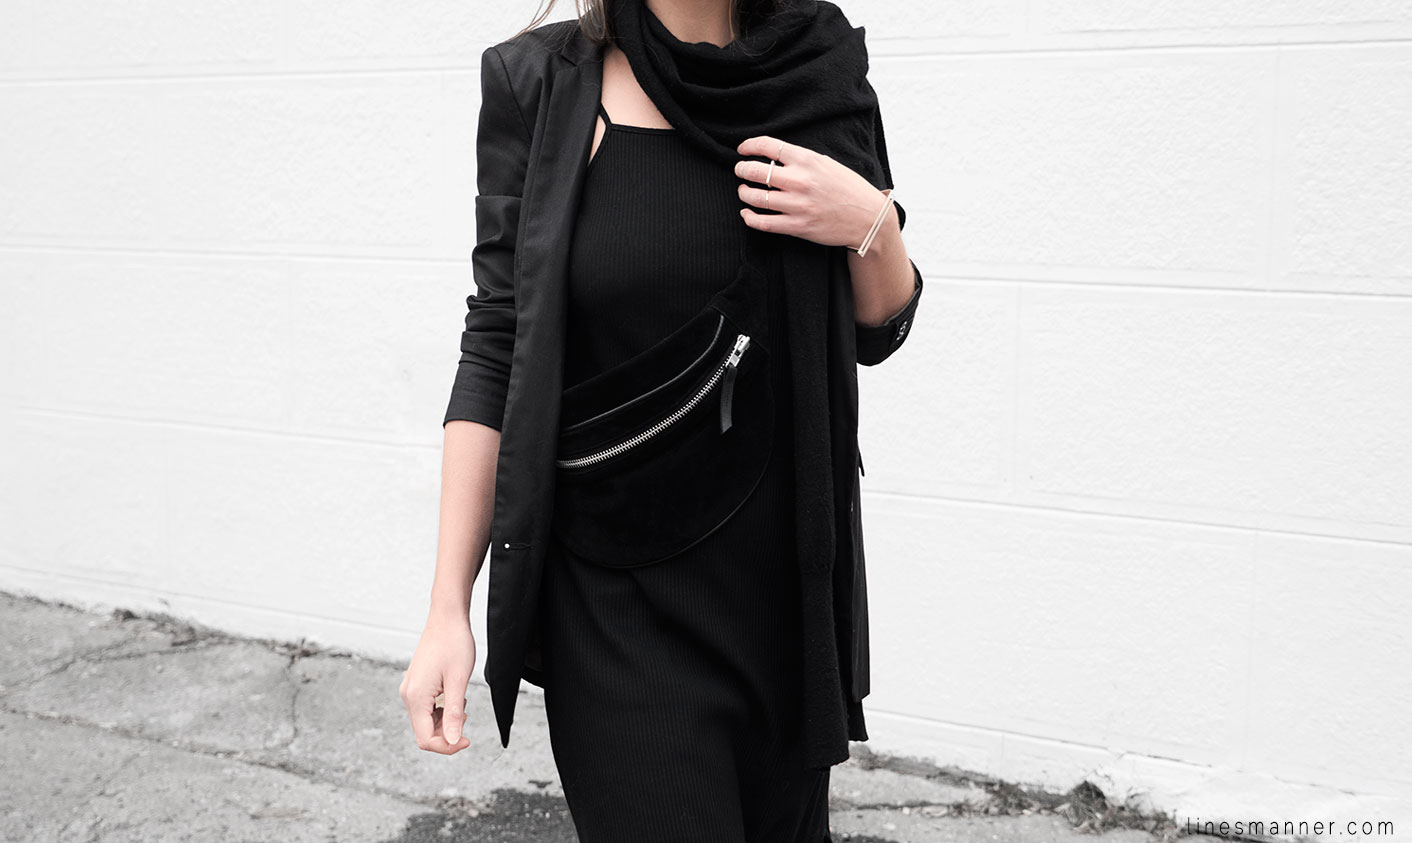 Lines-Manner-Black-Relaxed-Tone_on_Tone-Monochrome-Minimal-Sophistication-Comfort-Modern-Simplicity-Casual-Sporty_Luxe-Slit_Dress-Thrid_Form-Blazer-Essentials-Details-Basics-Timeless-Verstatile-Staple-Wardrobe-Sleek-Clean_Lines-All_Black_Everything-13